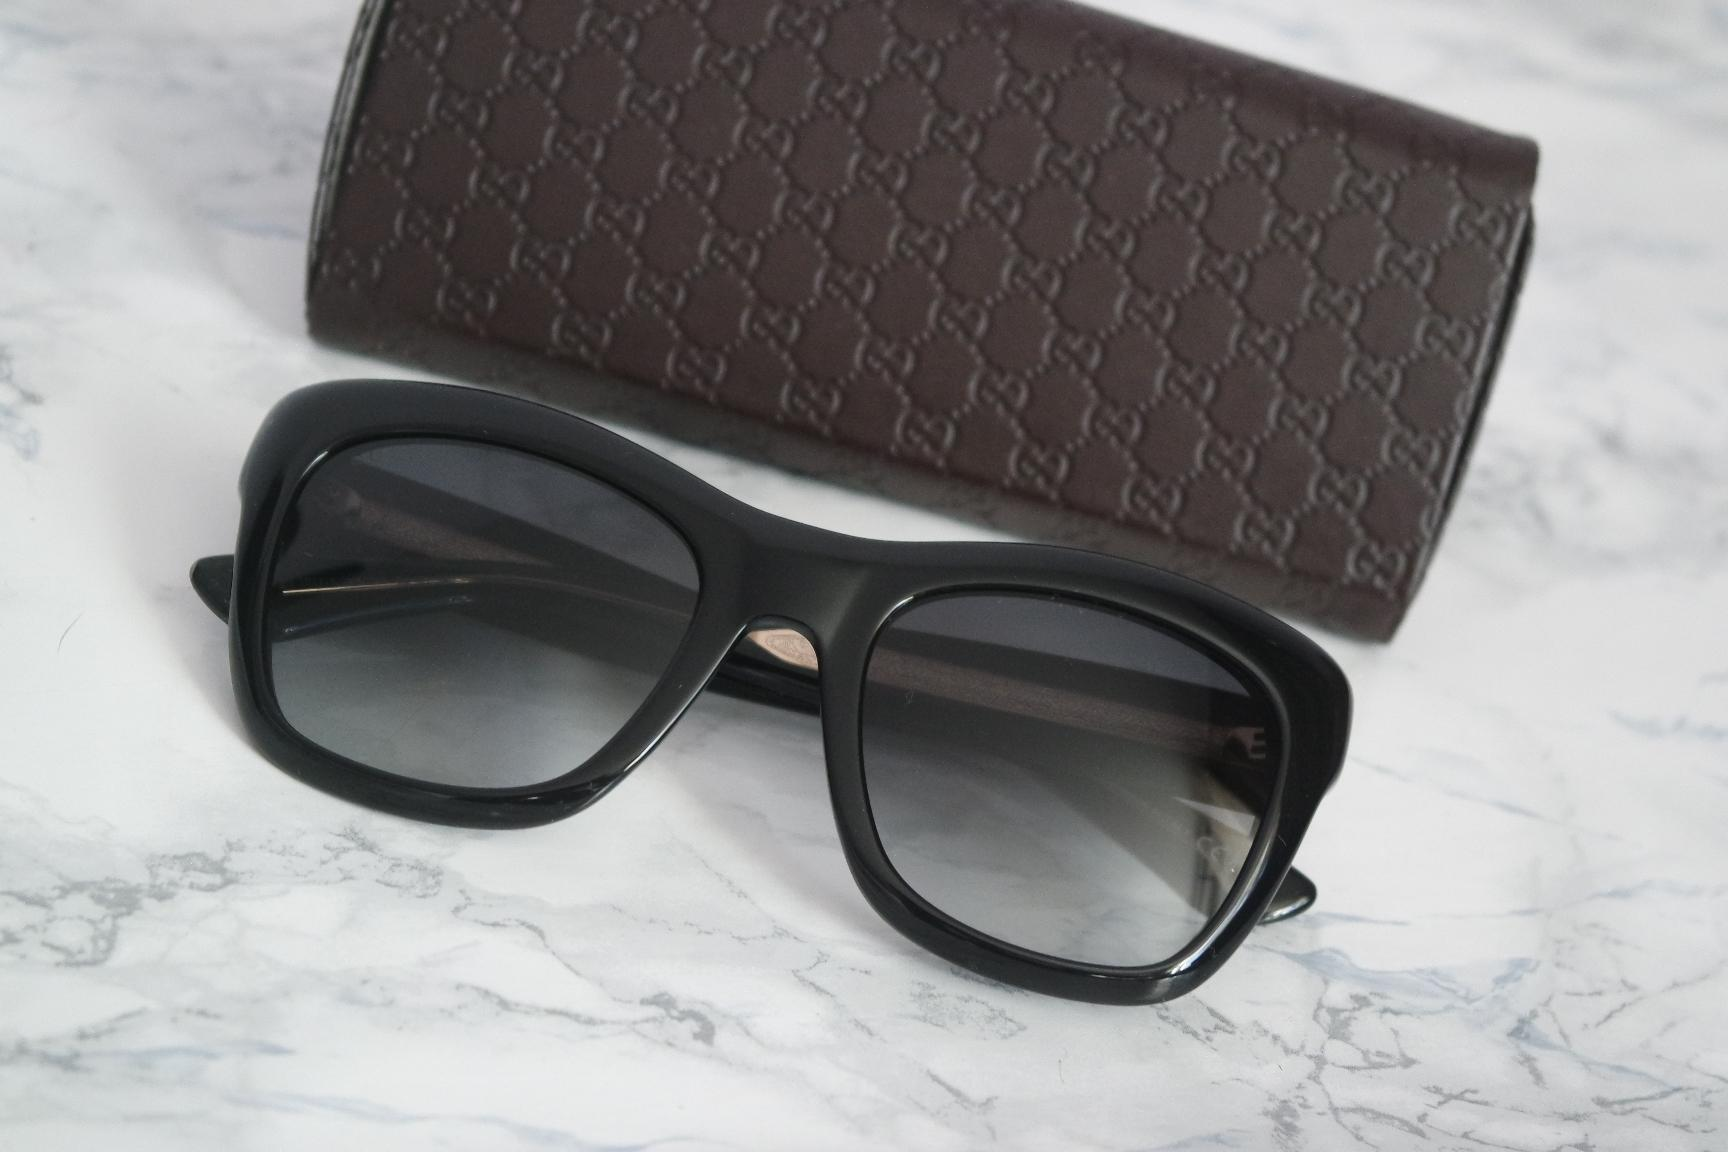 7a00653369 Gucci new oversized black cat eye sunglasses gold metal logo jpg 440x293  Gucci logo gold sunglass